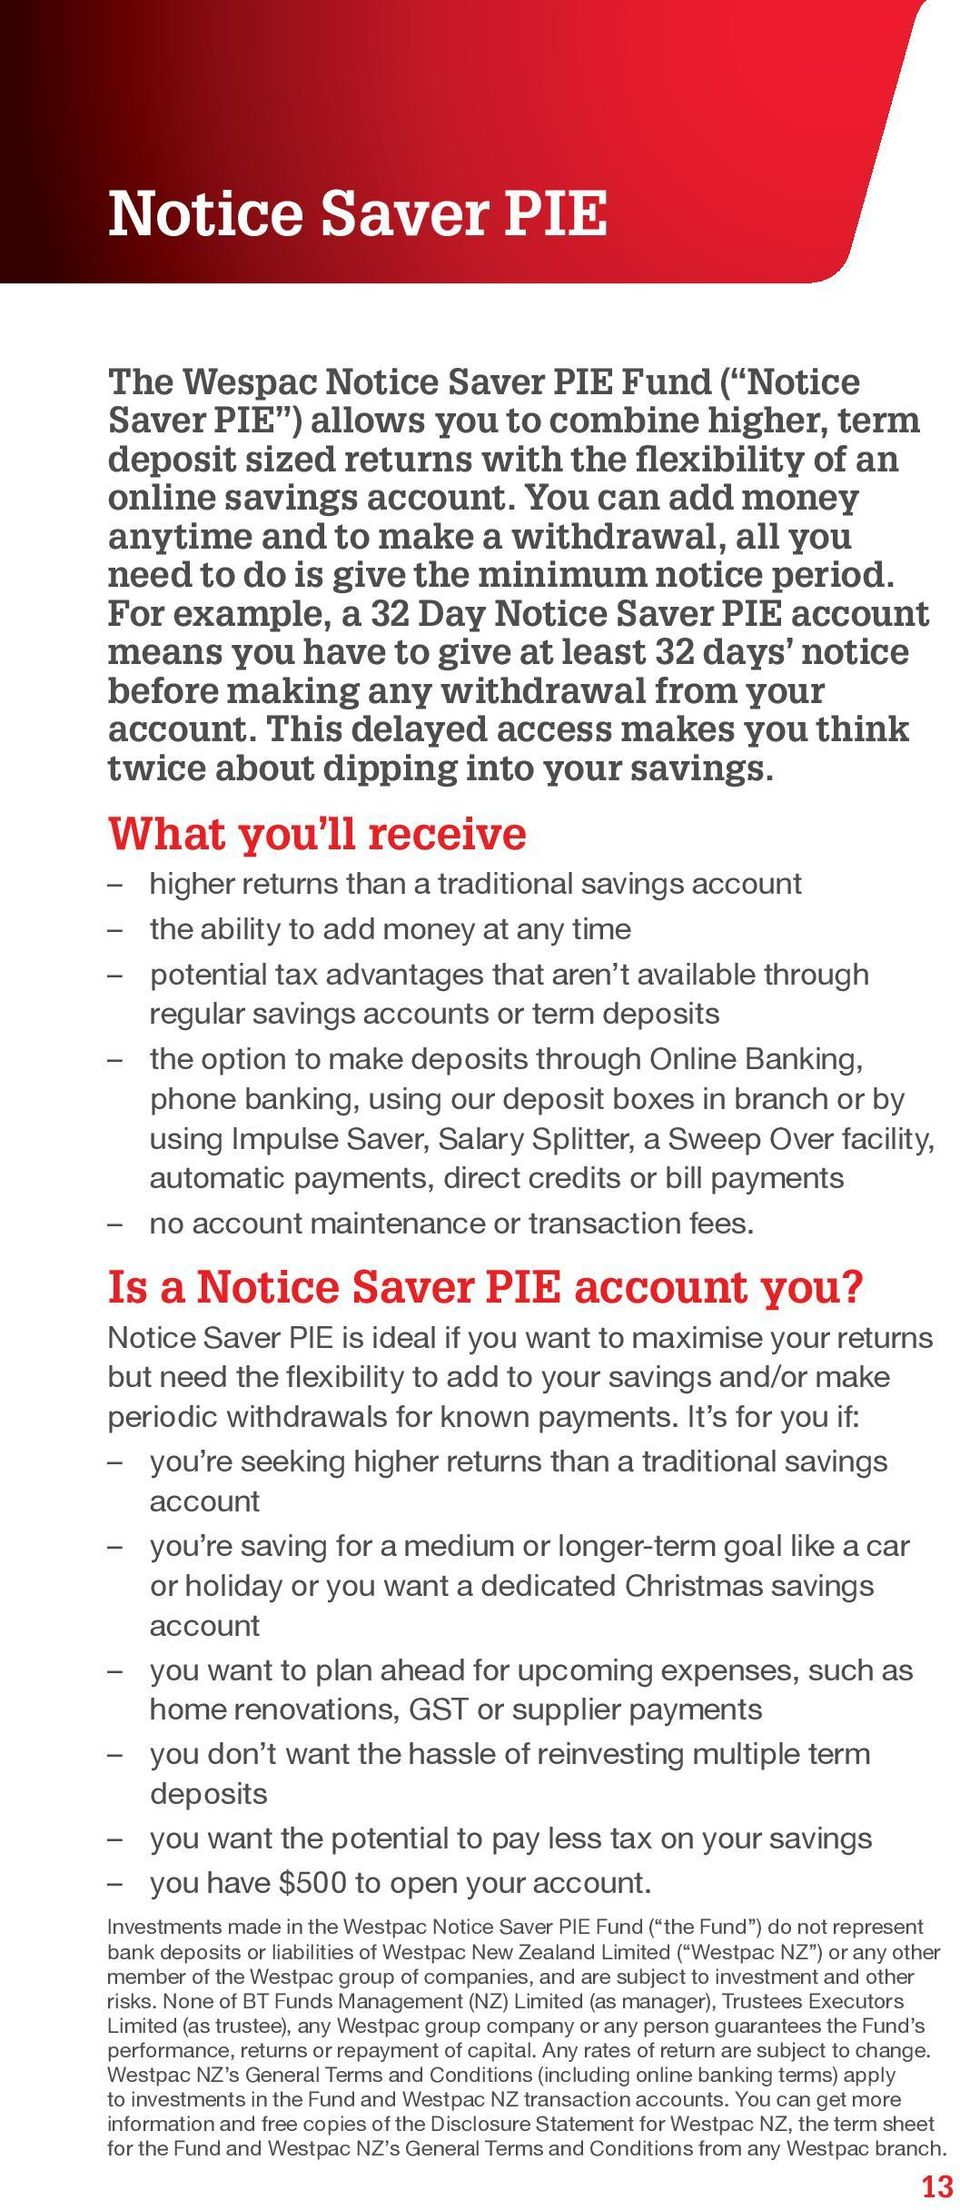 For example, a 32 Day Notice Saver PIE account means you have to give at least 32 days notice before making any withdrawal from your account.